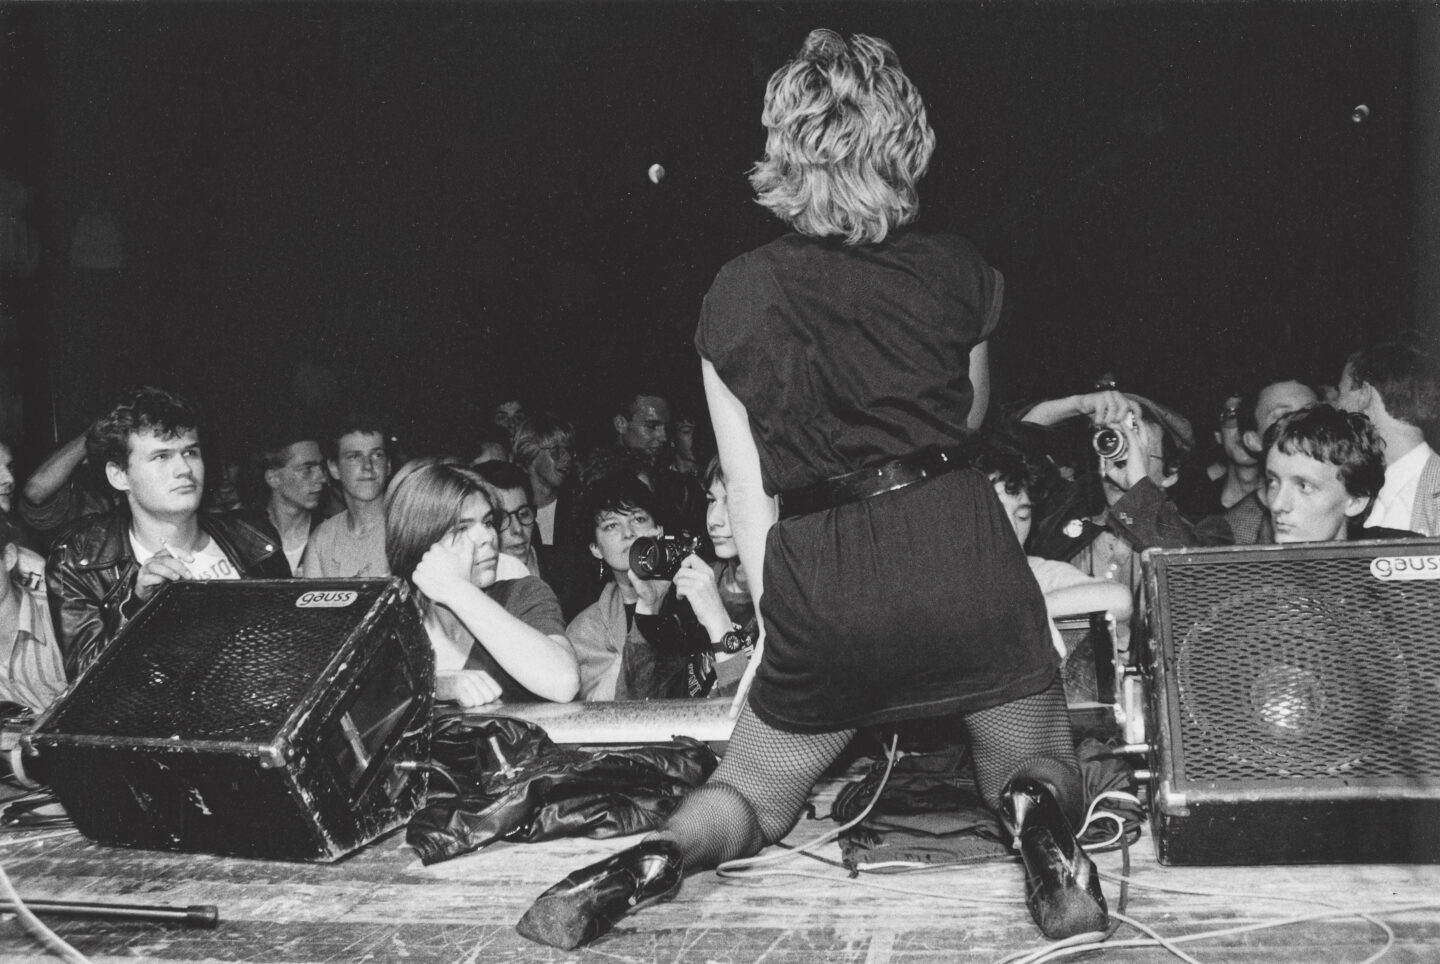 Exhibition View Groupshow «Ausbruch & Rausch, Zurich 1975-1980, Women Art Punk; view on Silvia Zanotta from Mother's Ruin at the Monsterkonzert, Zurich, 29 August 1980 / Photo: Koni Nordmann» at Strauhof, Zurich, 2020